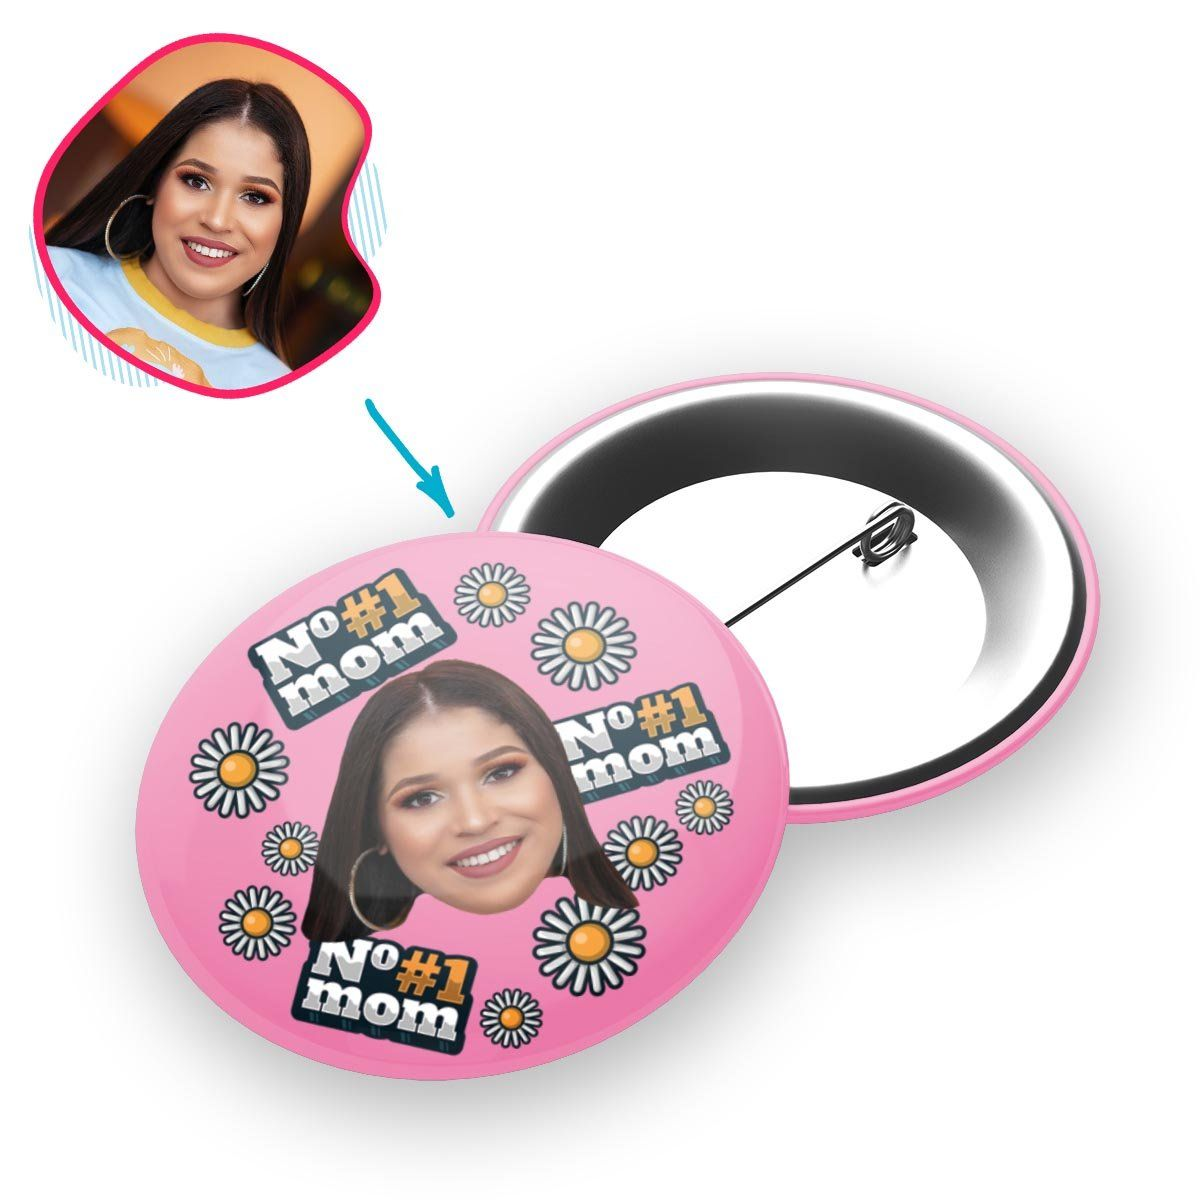 pink #1 Mom pin personalized with photo of face printed on it